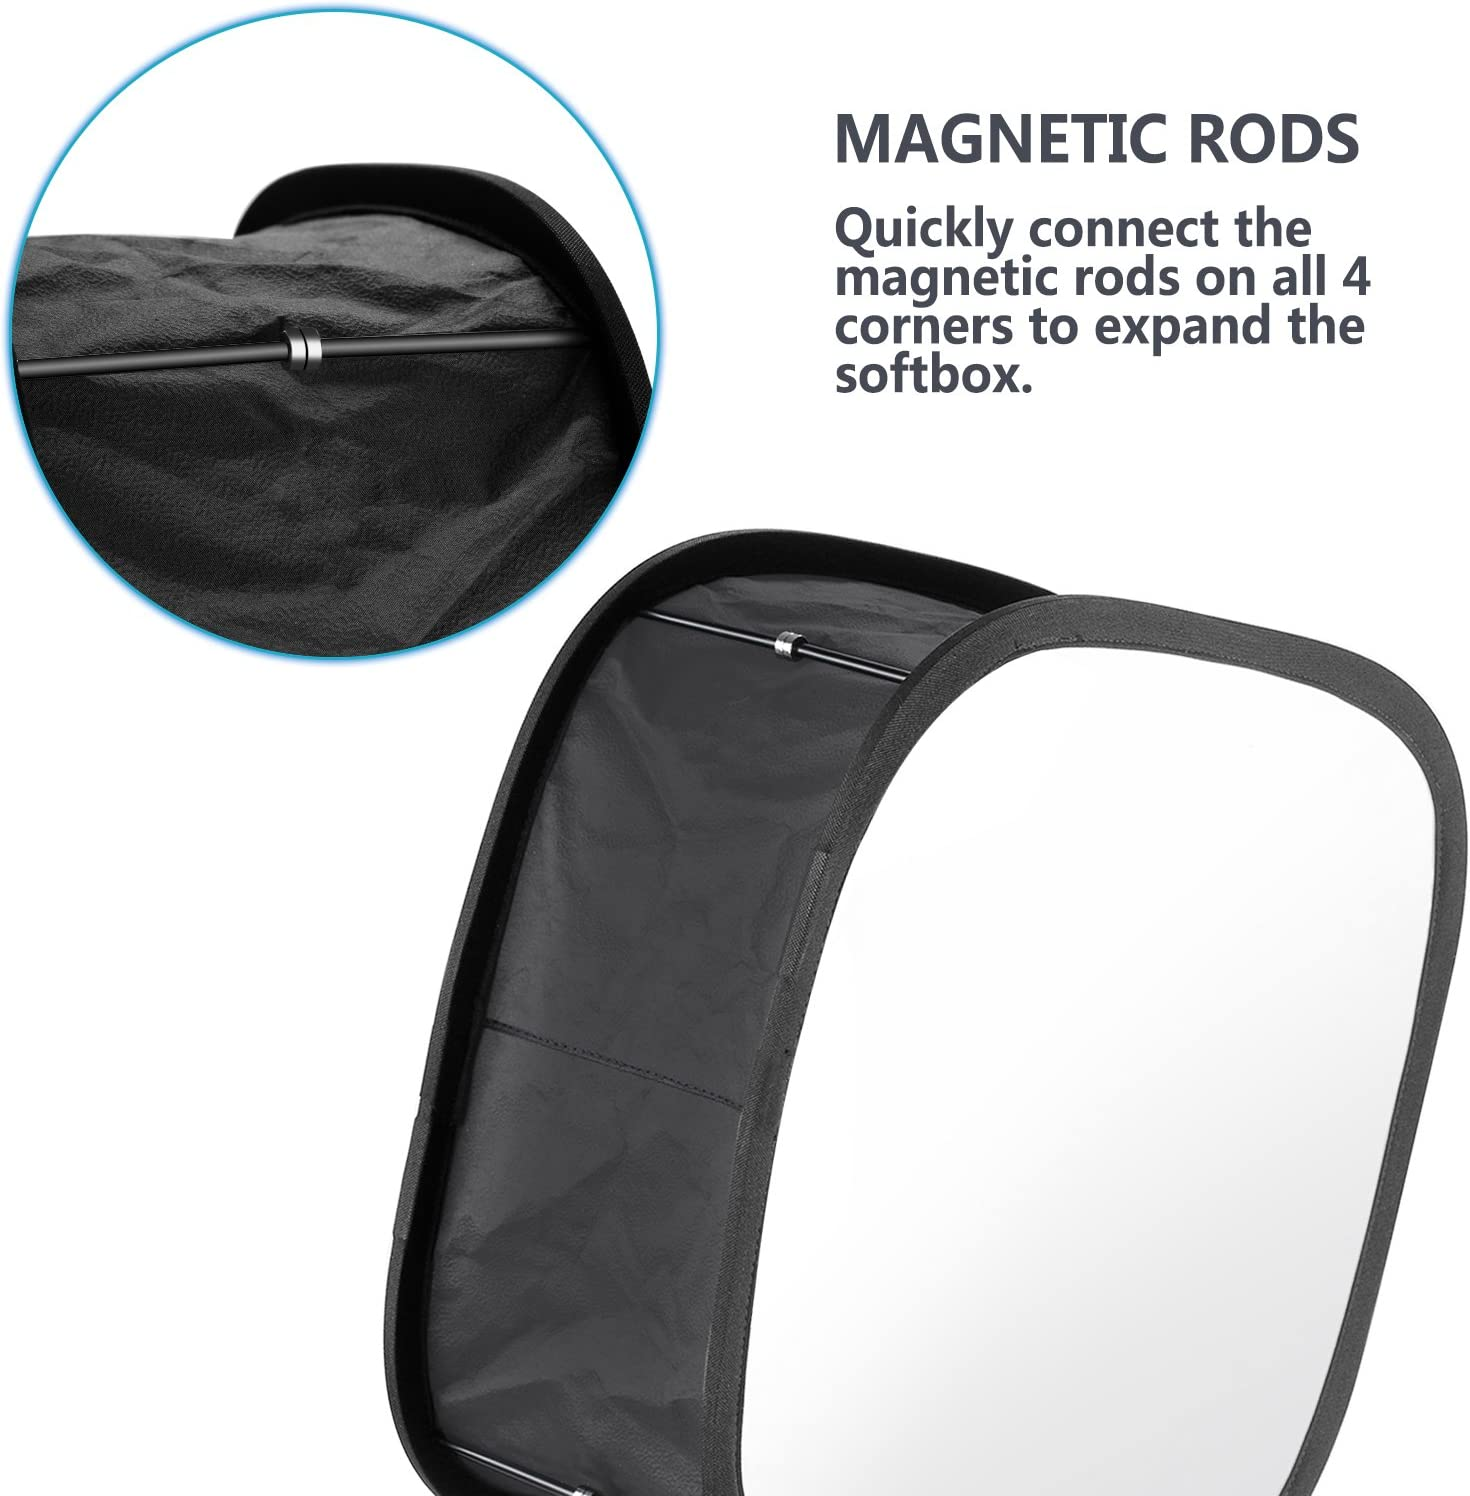 Foldable Portable Light Diffuser with Carrying Bag 11.5x11.5inches Opening Neewer Collapsible Trapezoid LED Light Softbox Strap Attachment Compatible with Neewer 480//660//530 LED Light Panels